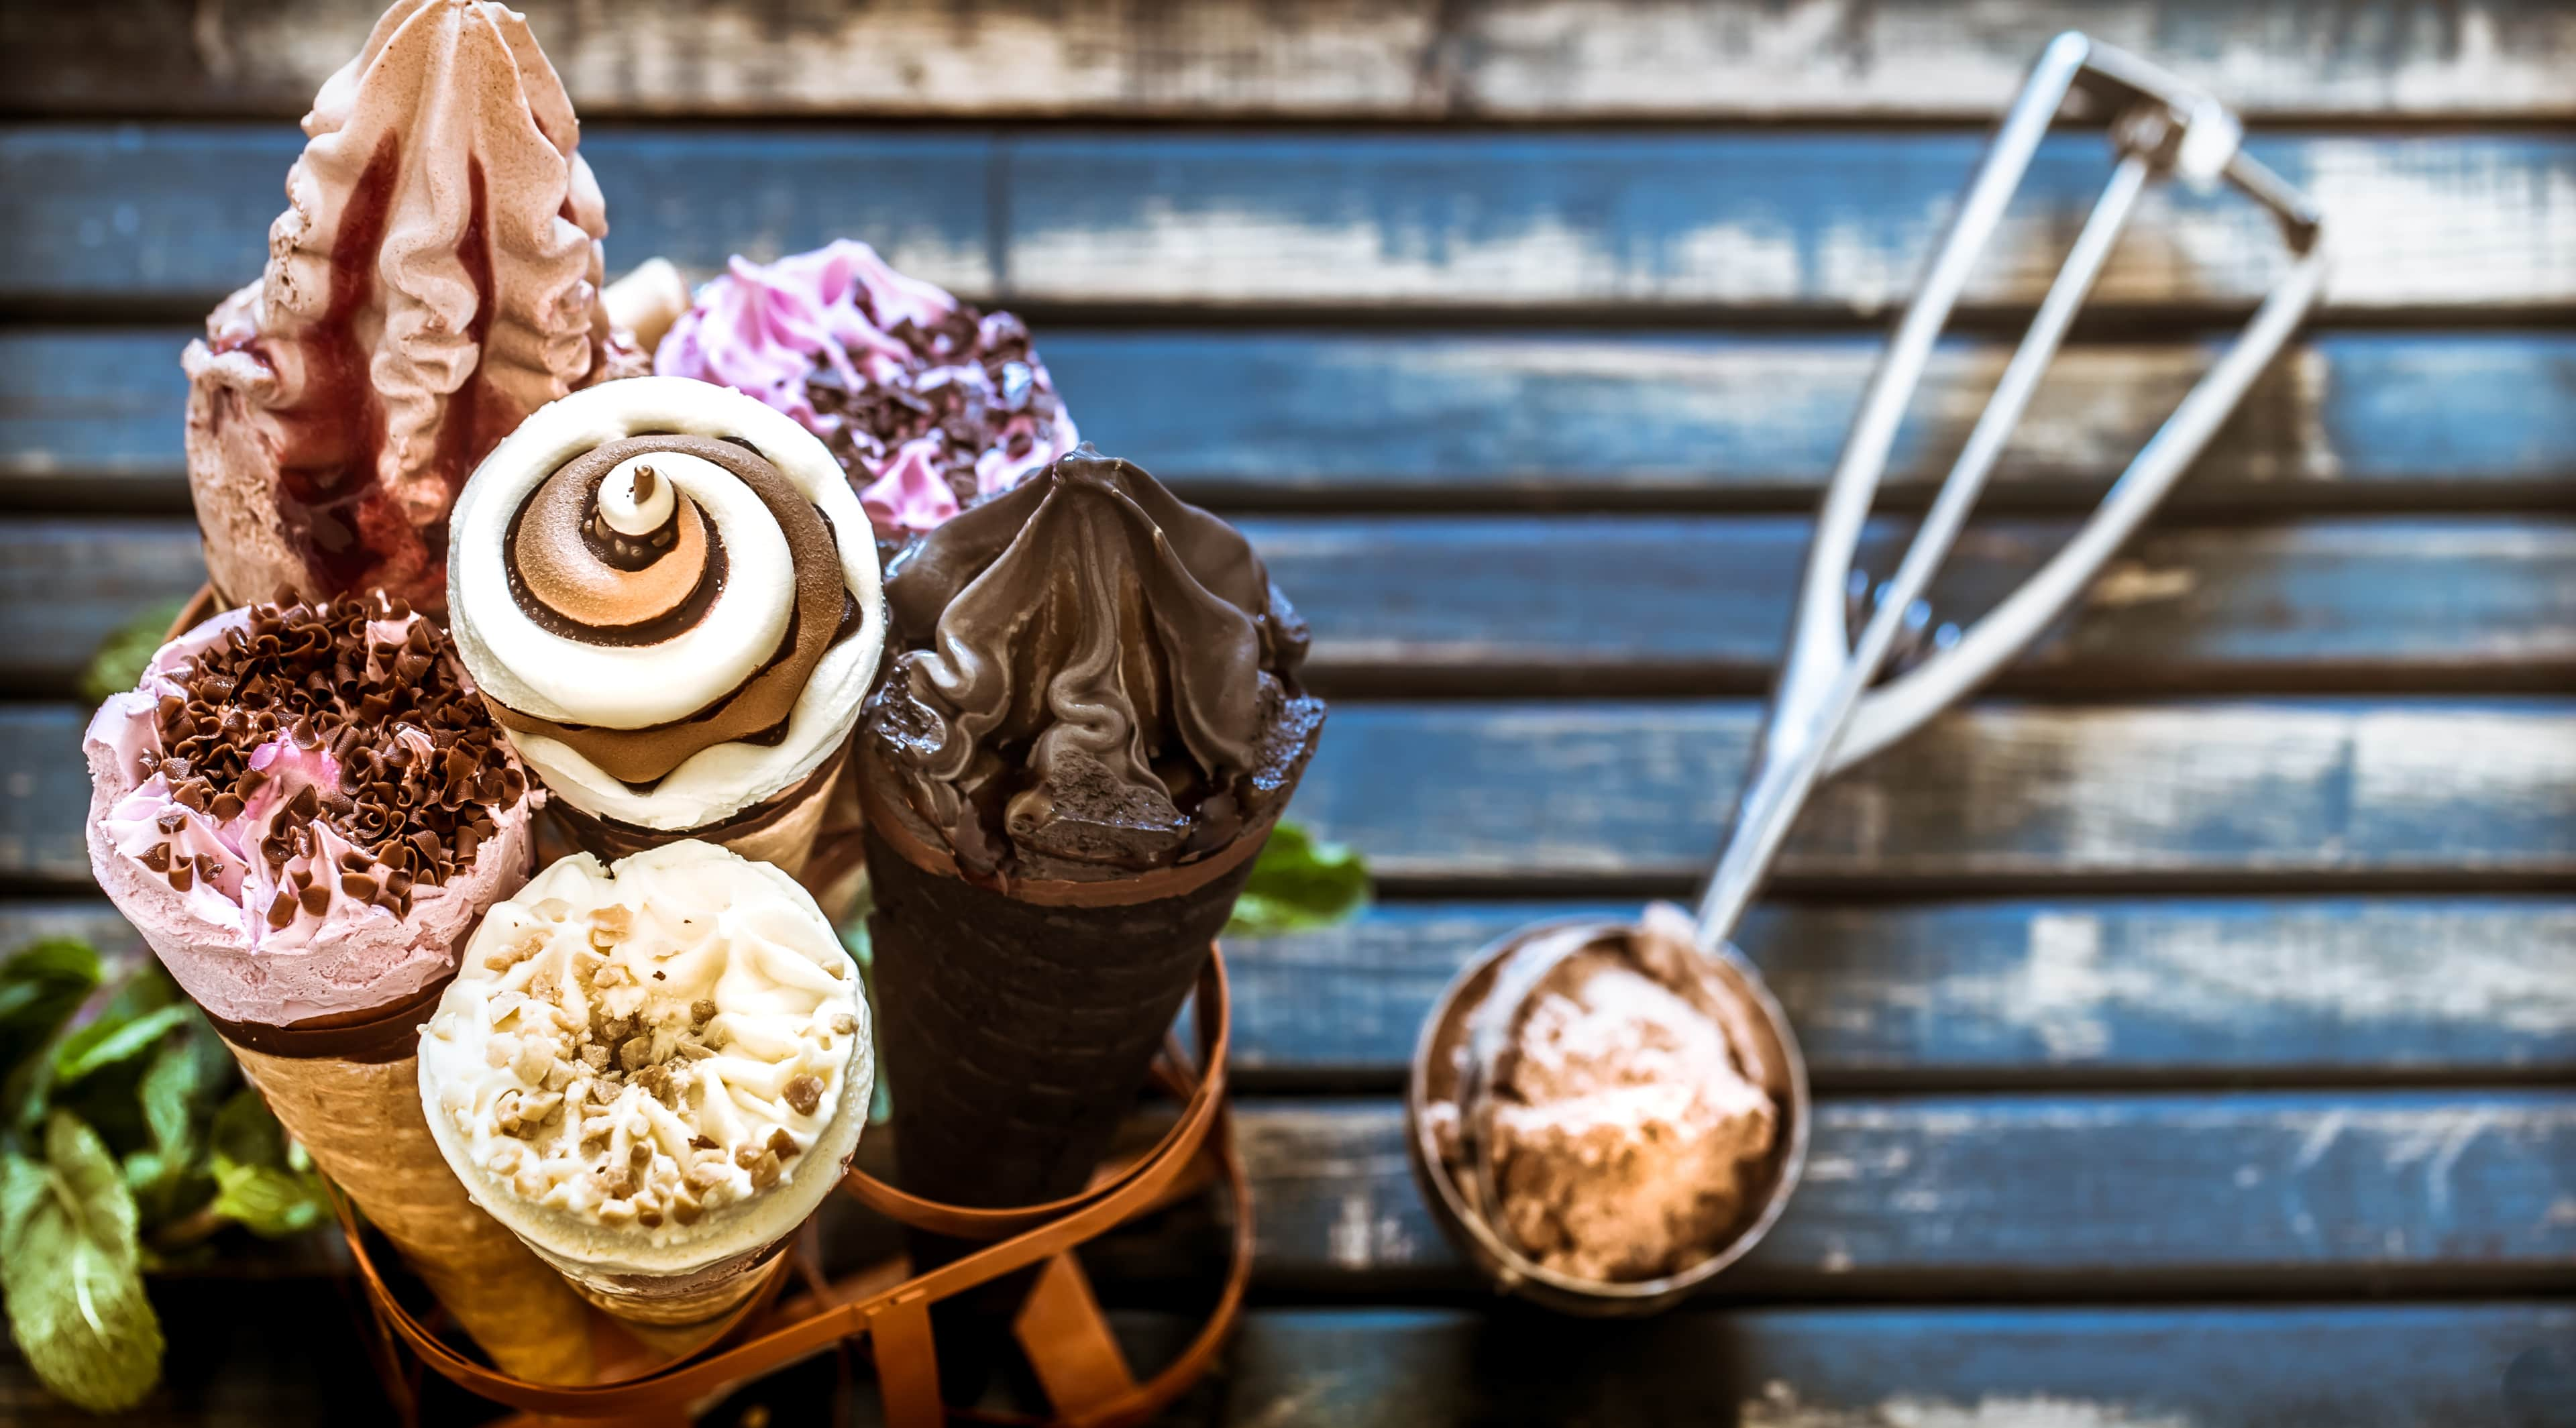 Variety of ice cream cones on a stand